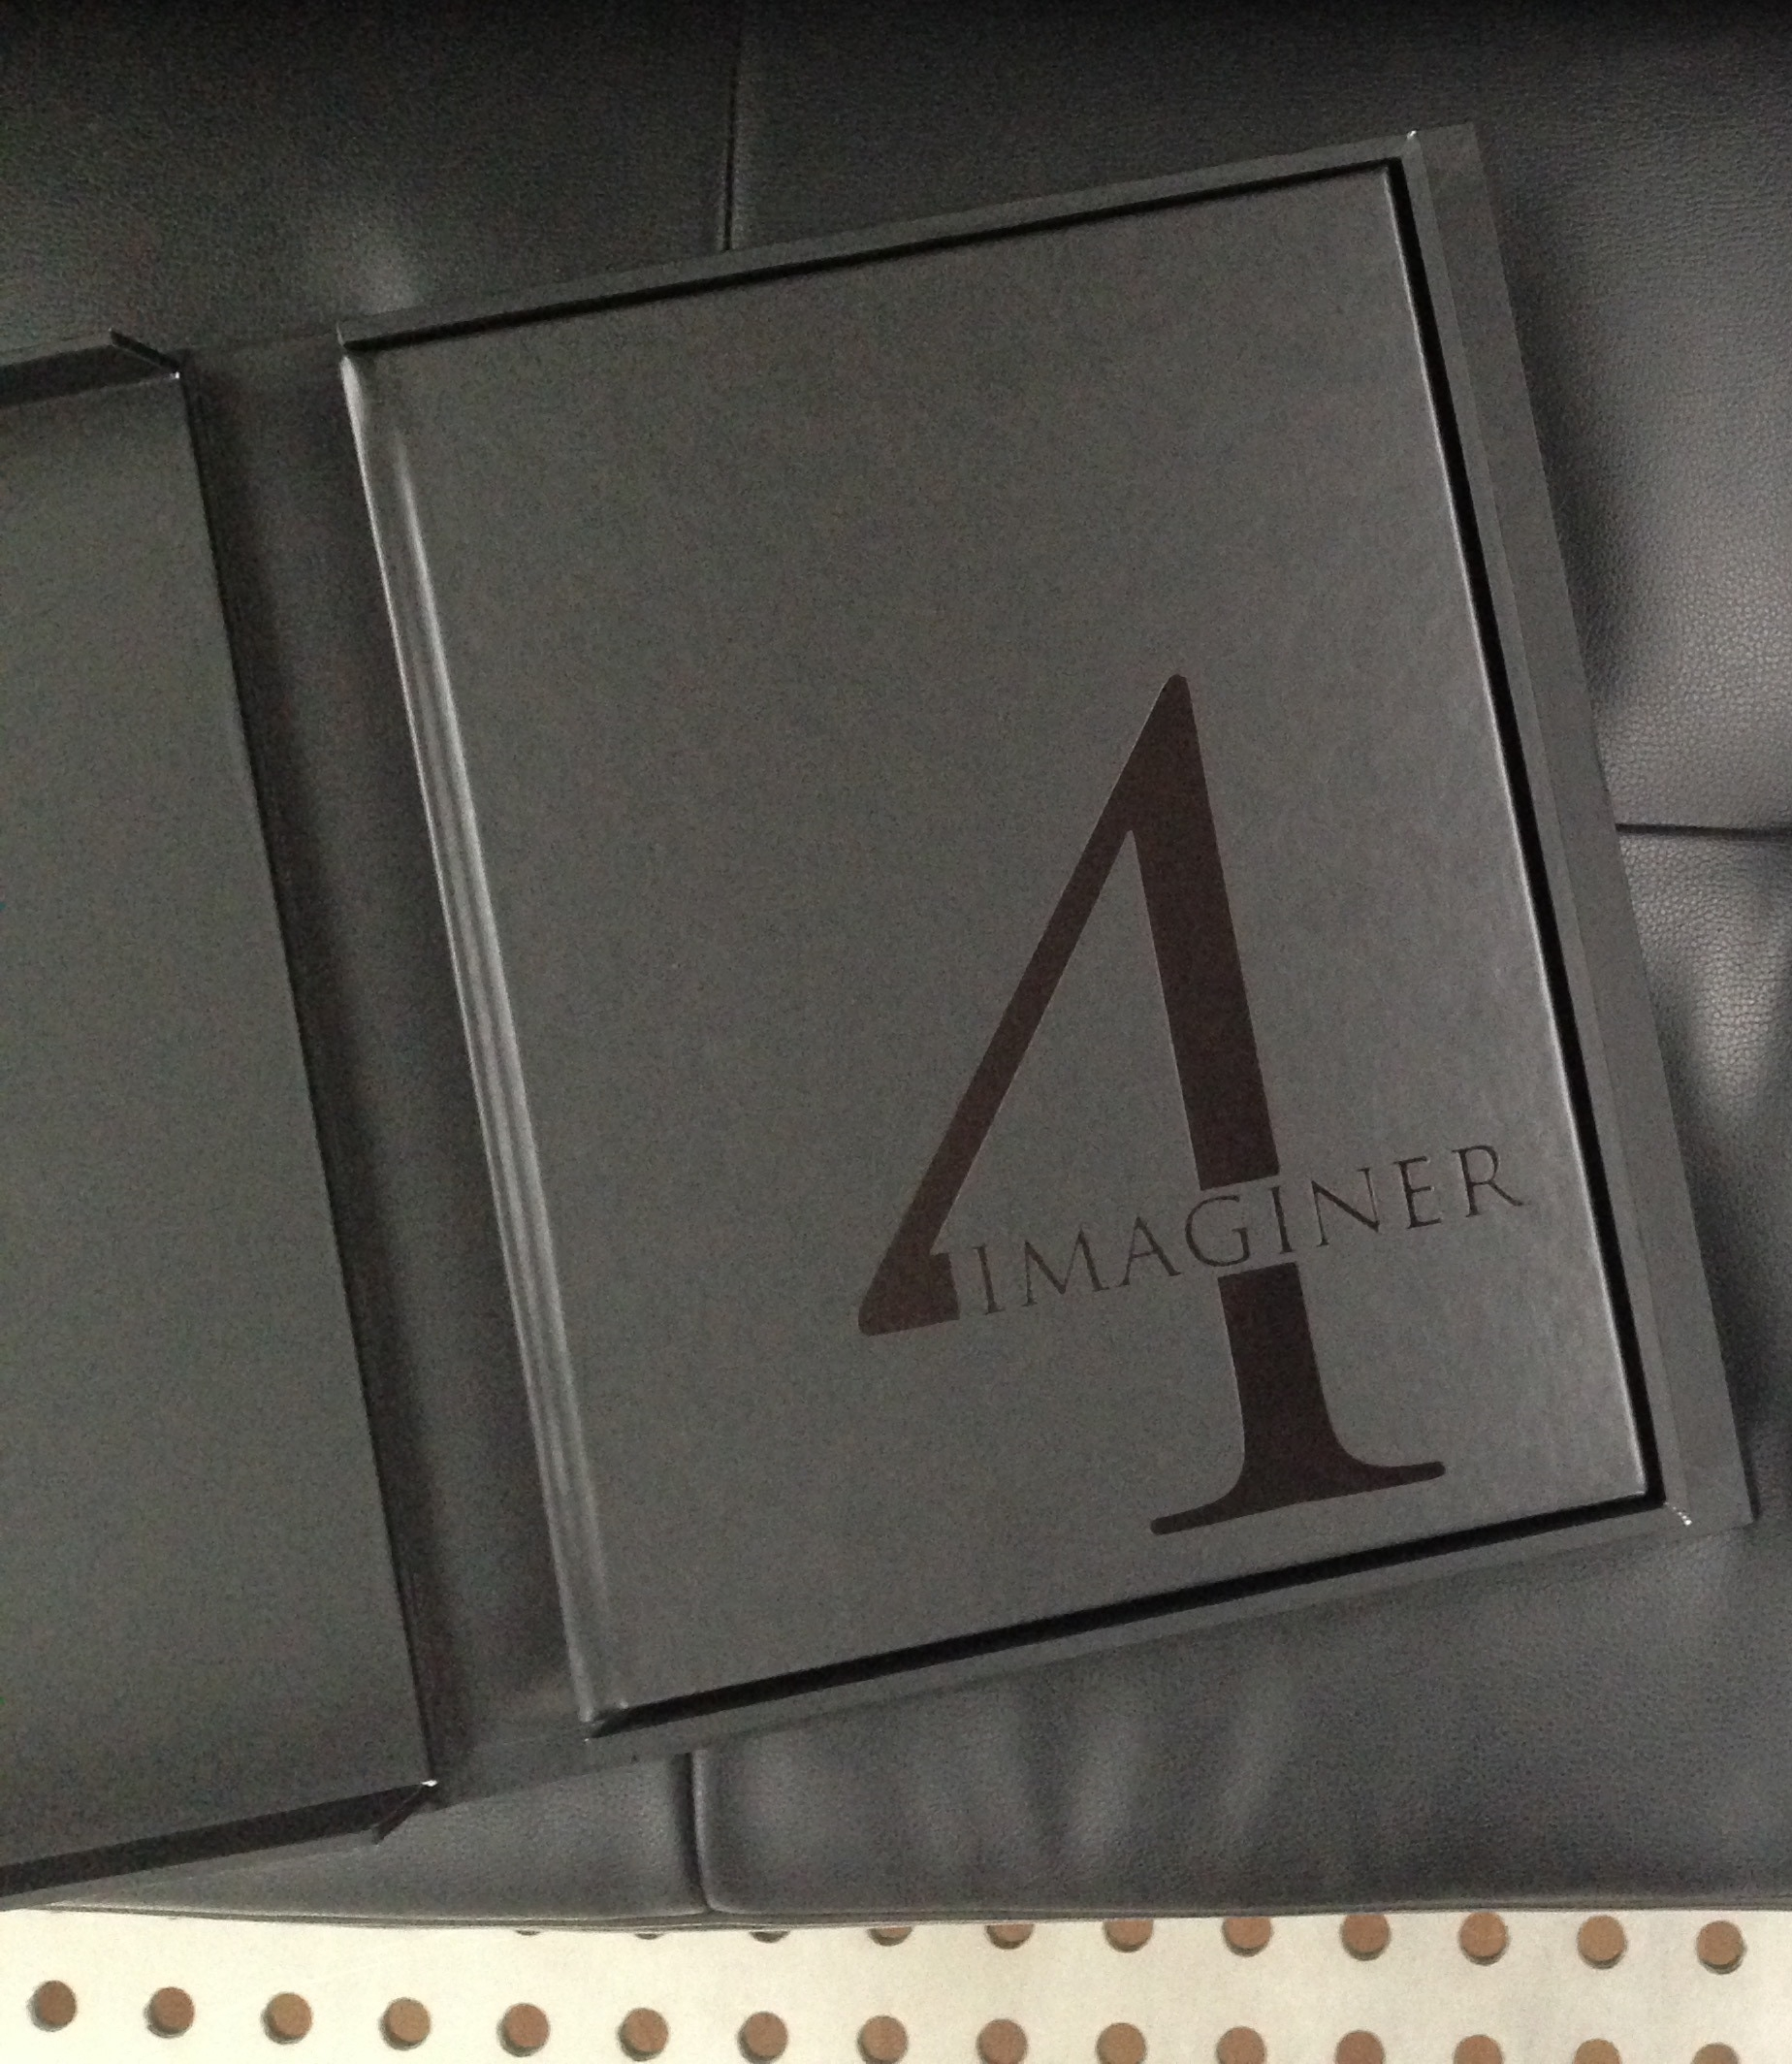 Imaginer 4 - deluxe edition in clamshell case